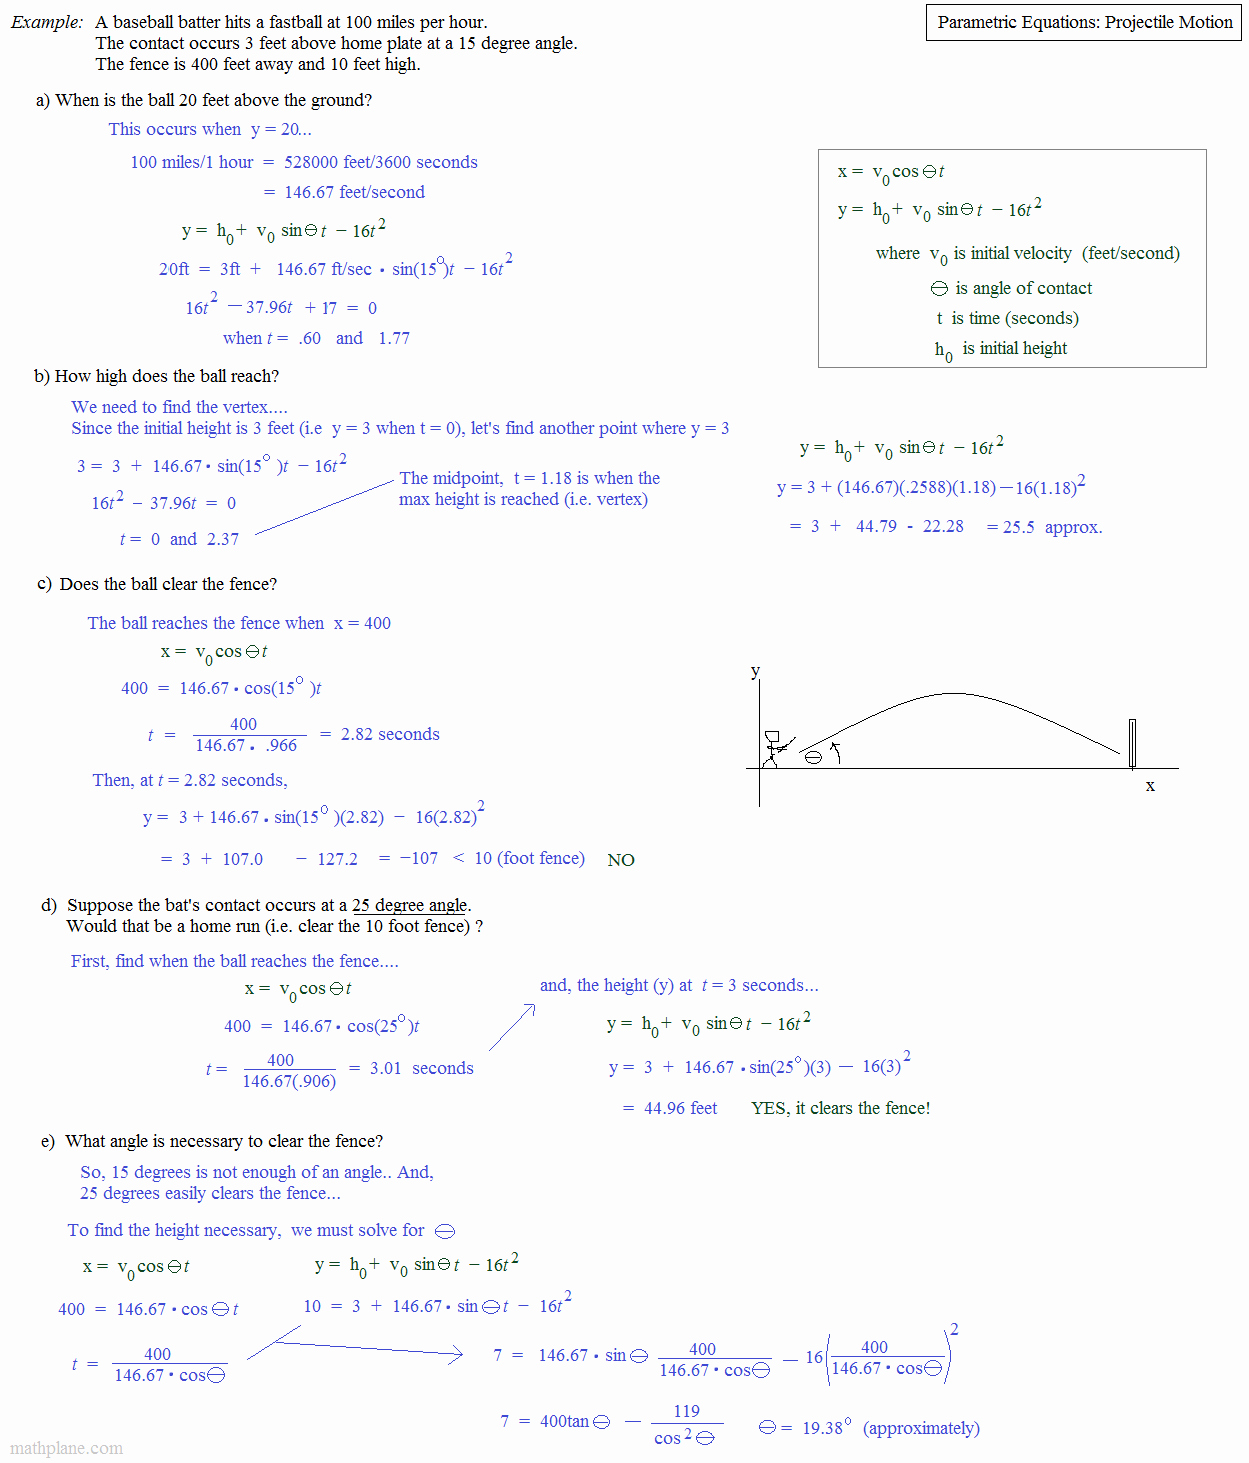 Projectile Motion Worksheet with Answers New Math Plane Play Ball Math and Baseball Statistics